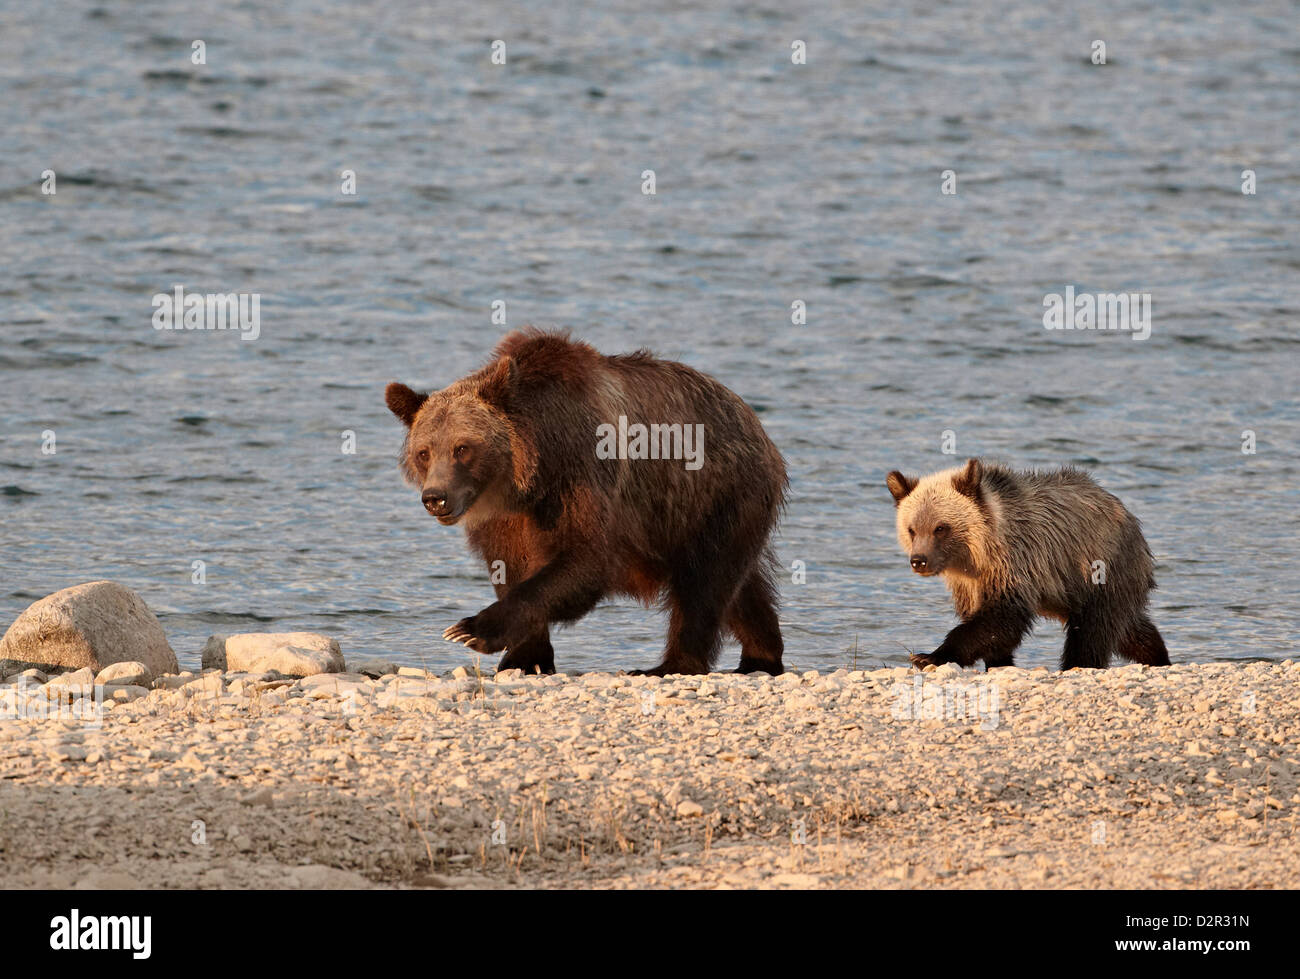 Grizzly bear (Ursus arctos horribilis) sow and yearling cub, Glacier National Park, Montana, USA Stock Photo